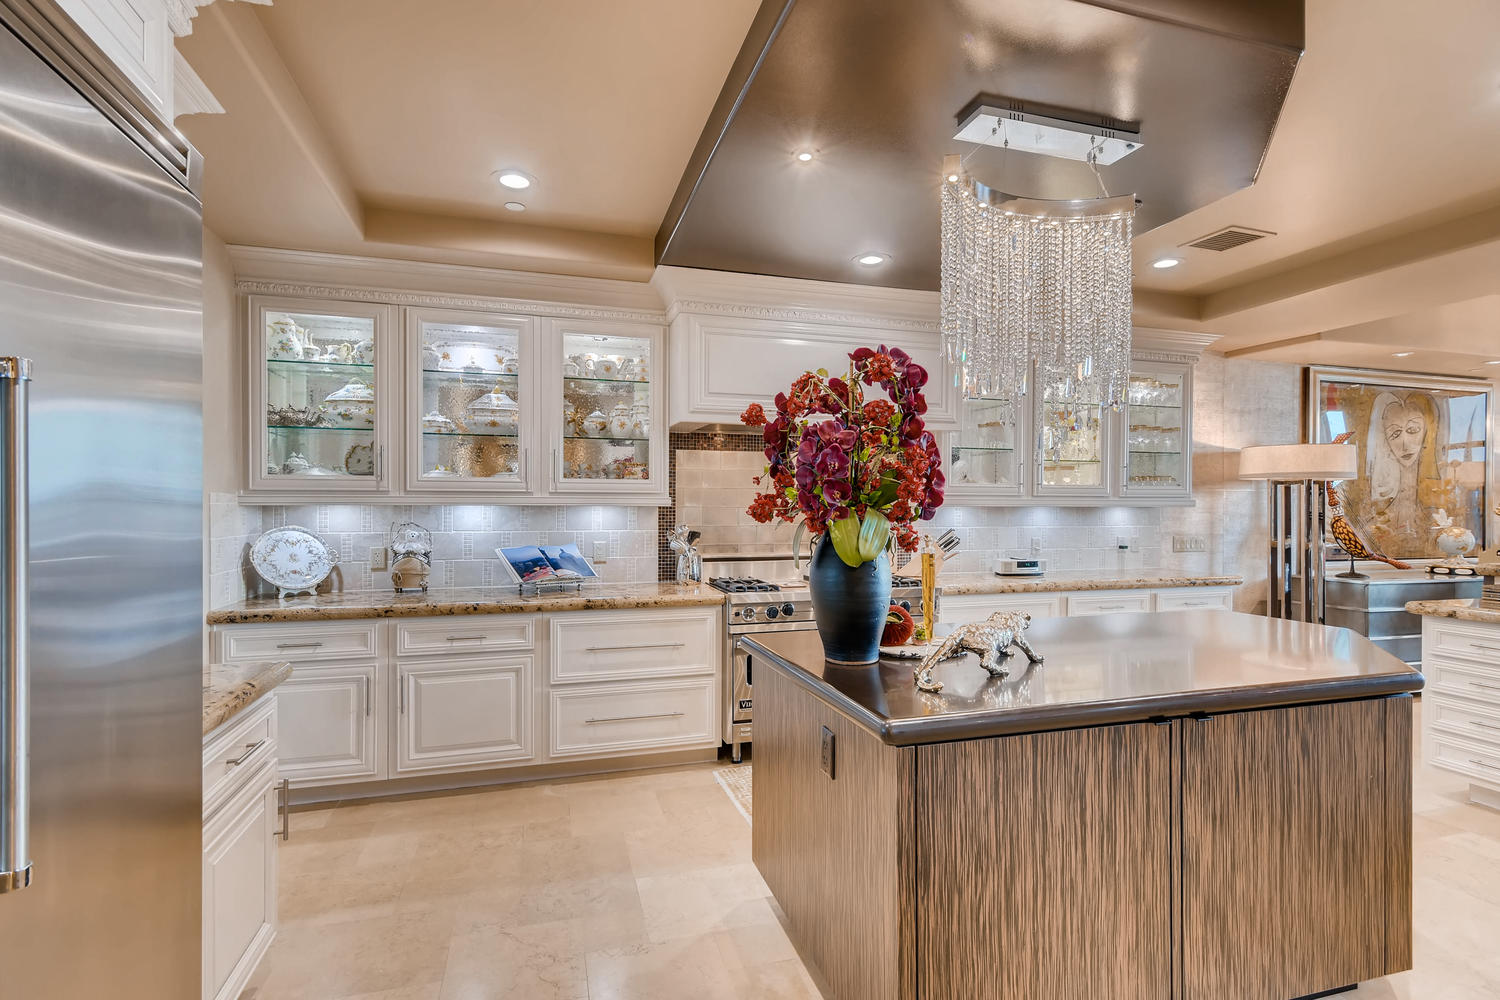 9101-alta-304-las-vegas-nv-large-013-8-kitchen-1500×1000-72dpi